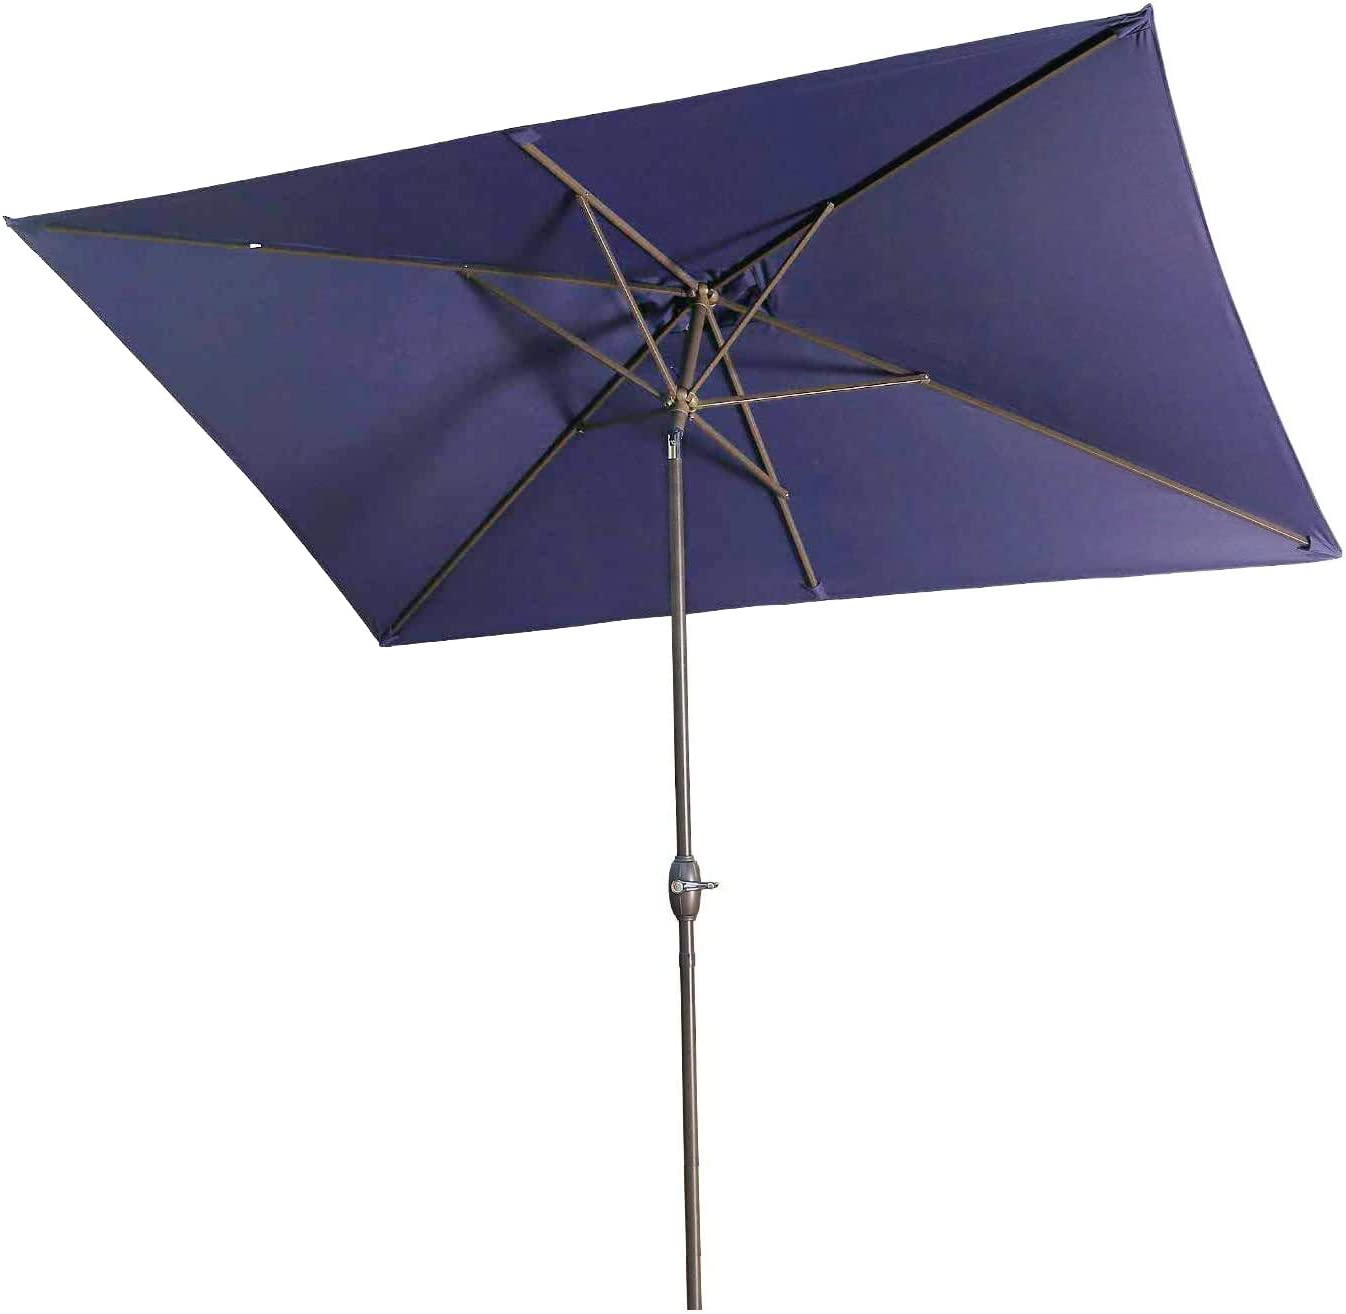 Aok Garden 6.5×10 ft Rectangular Patio Umbrella Outdoor Market Table Umbrella with Tilt and Crank 6 Sturdy Ribs for Deck Lawn Pool, Navy Blue